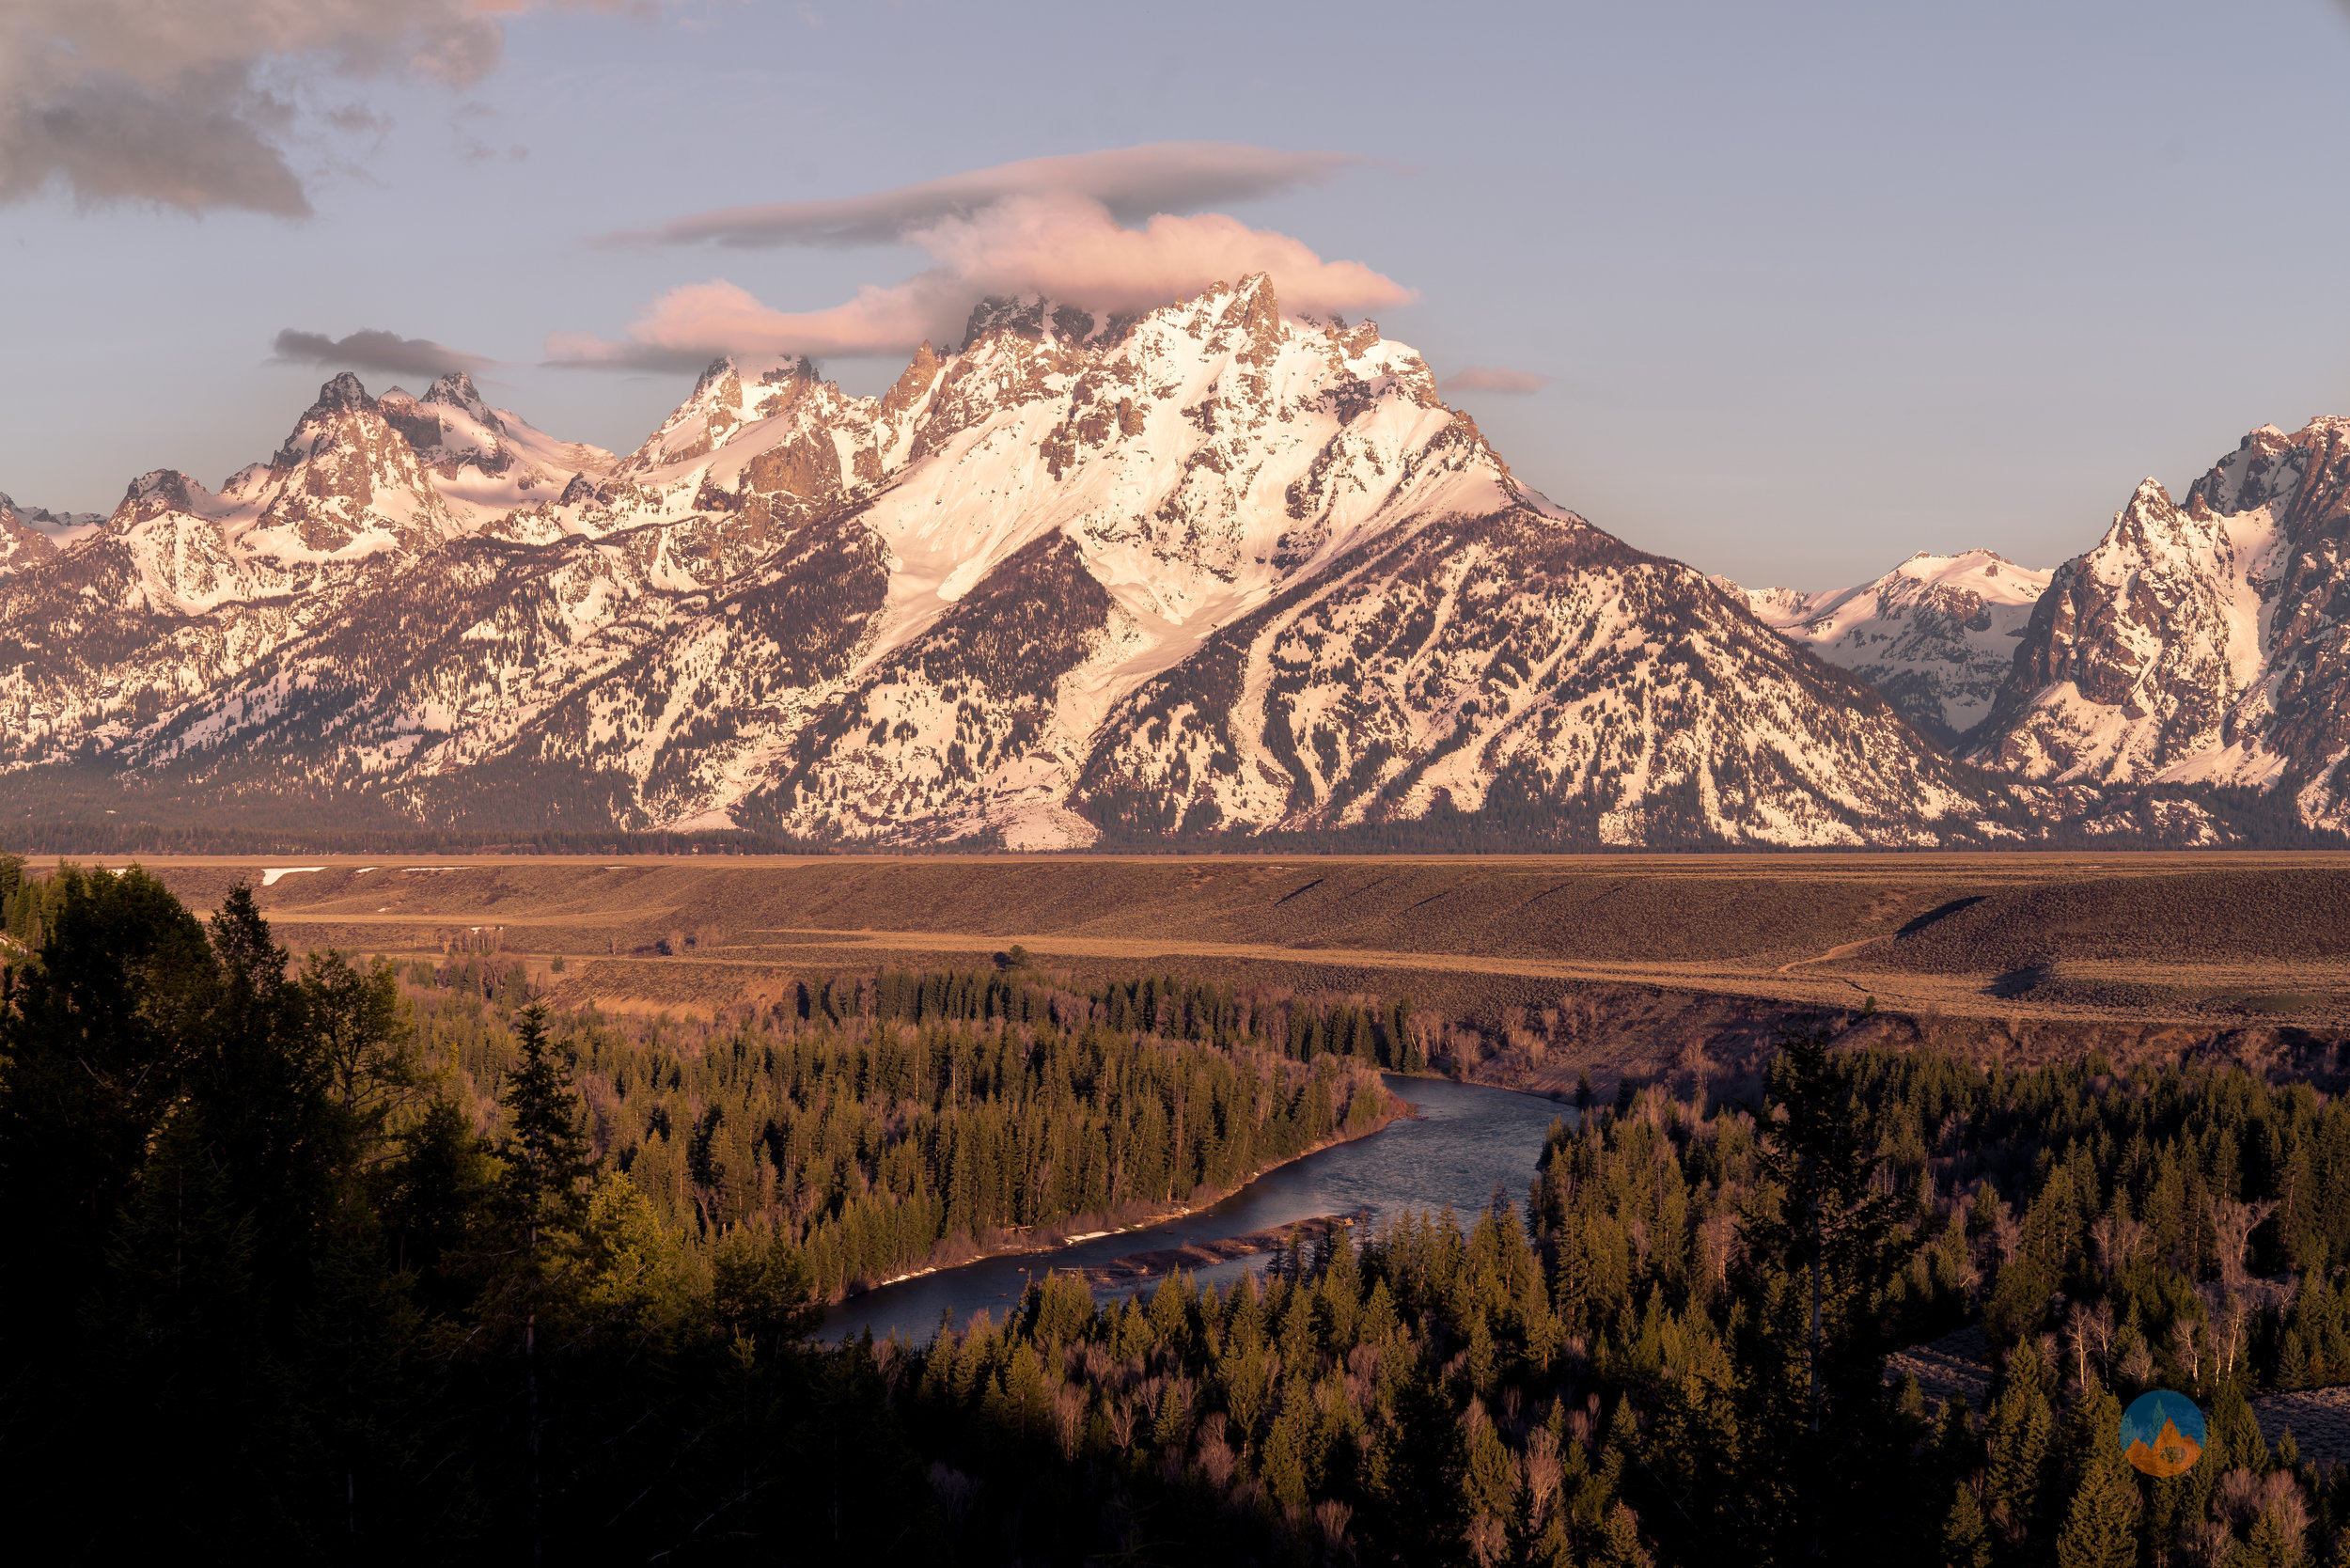 Snake River, Grant Teton National Park